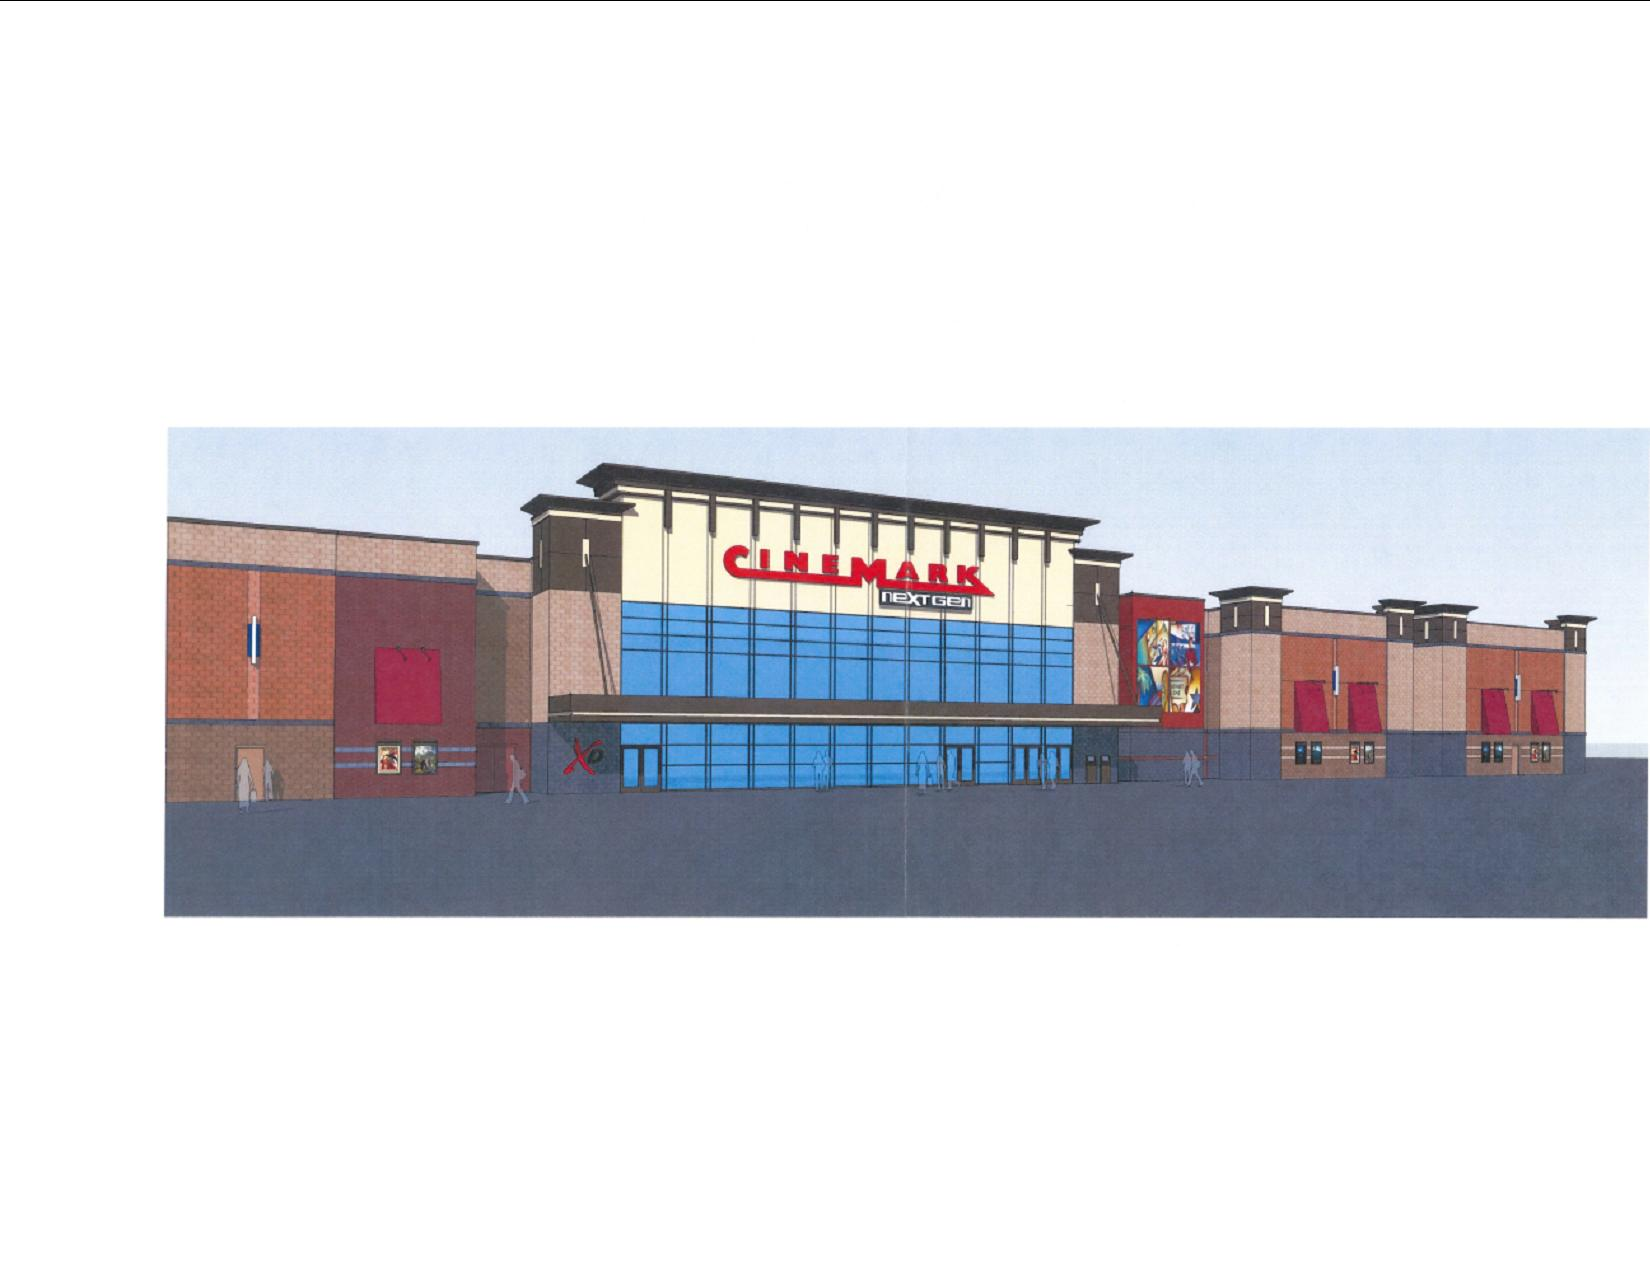 Cinemark rendering